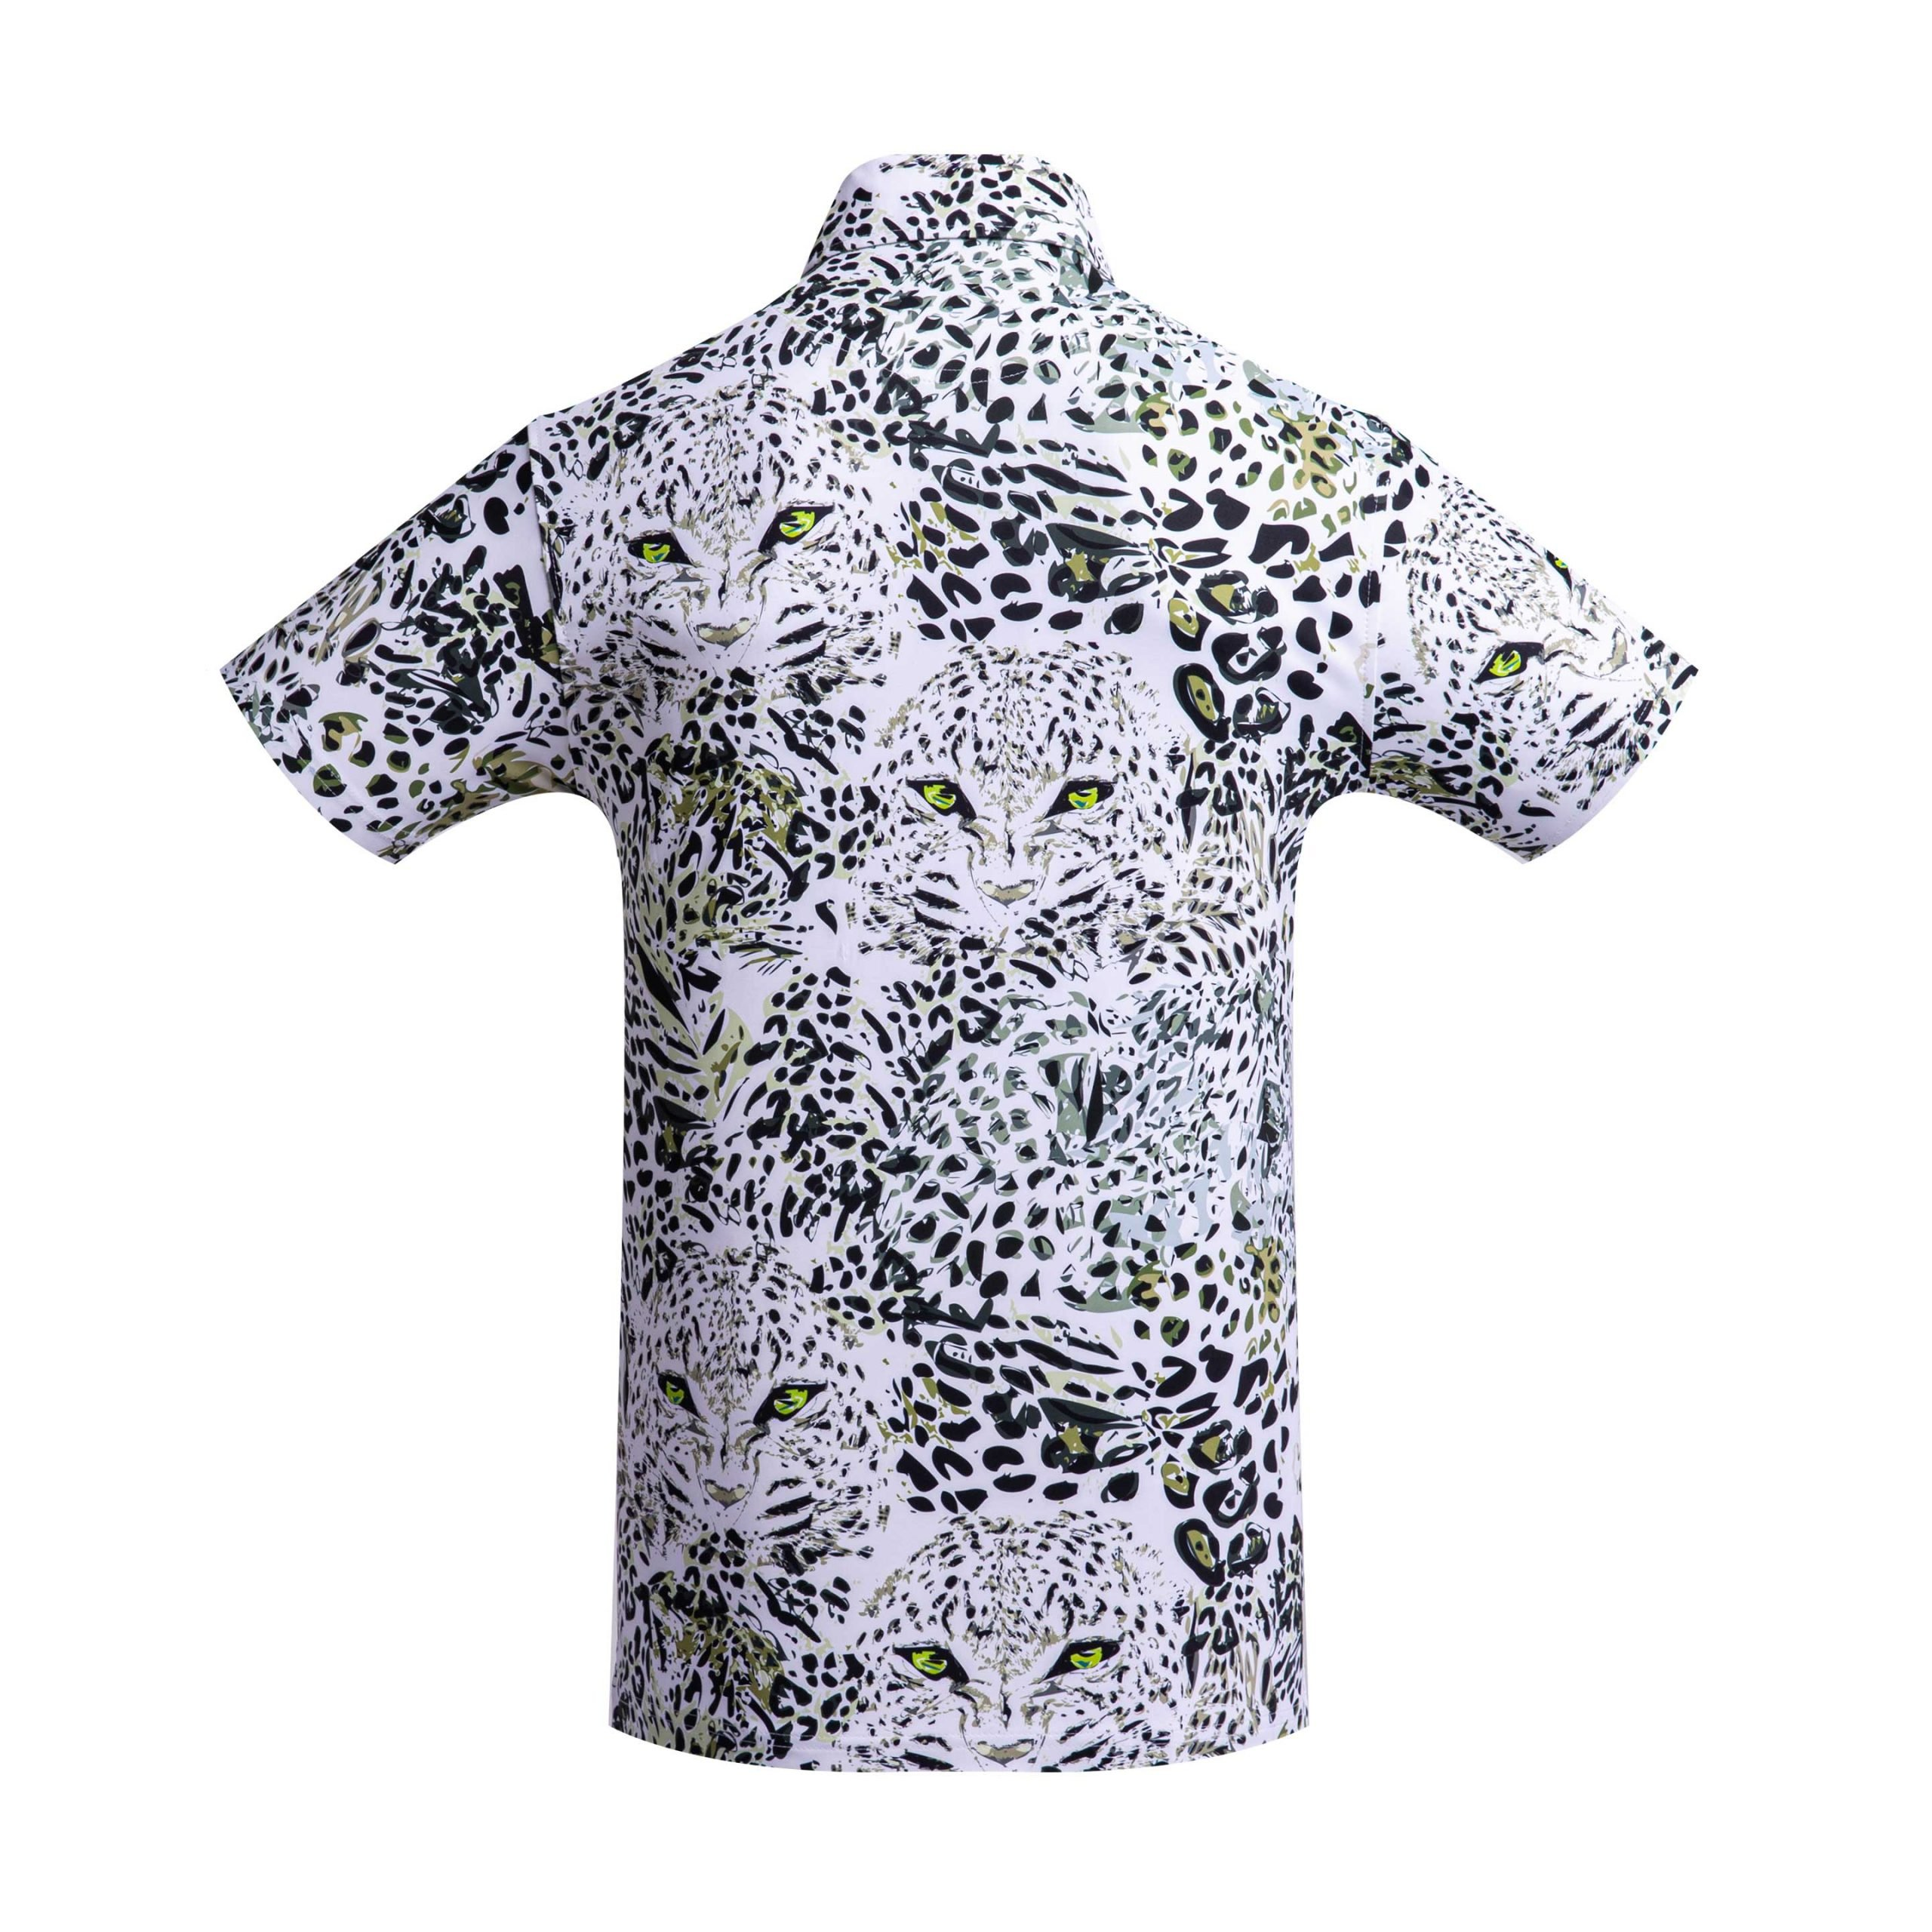 Golf shirt - Leopard